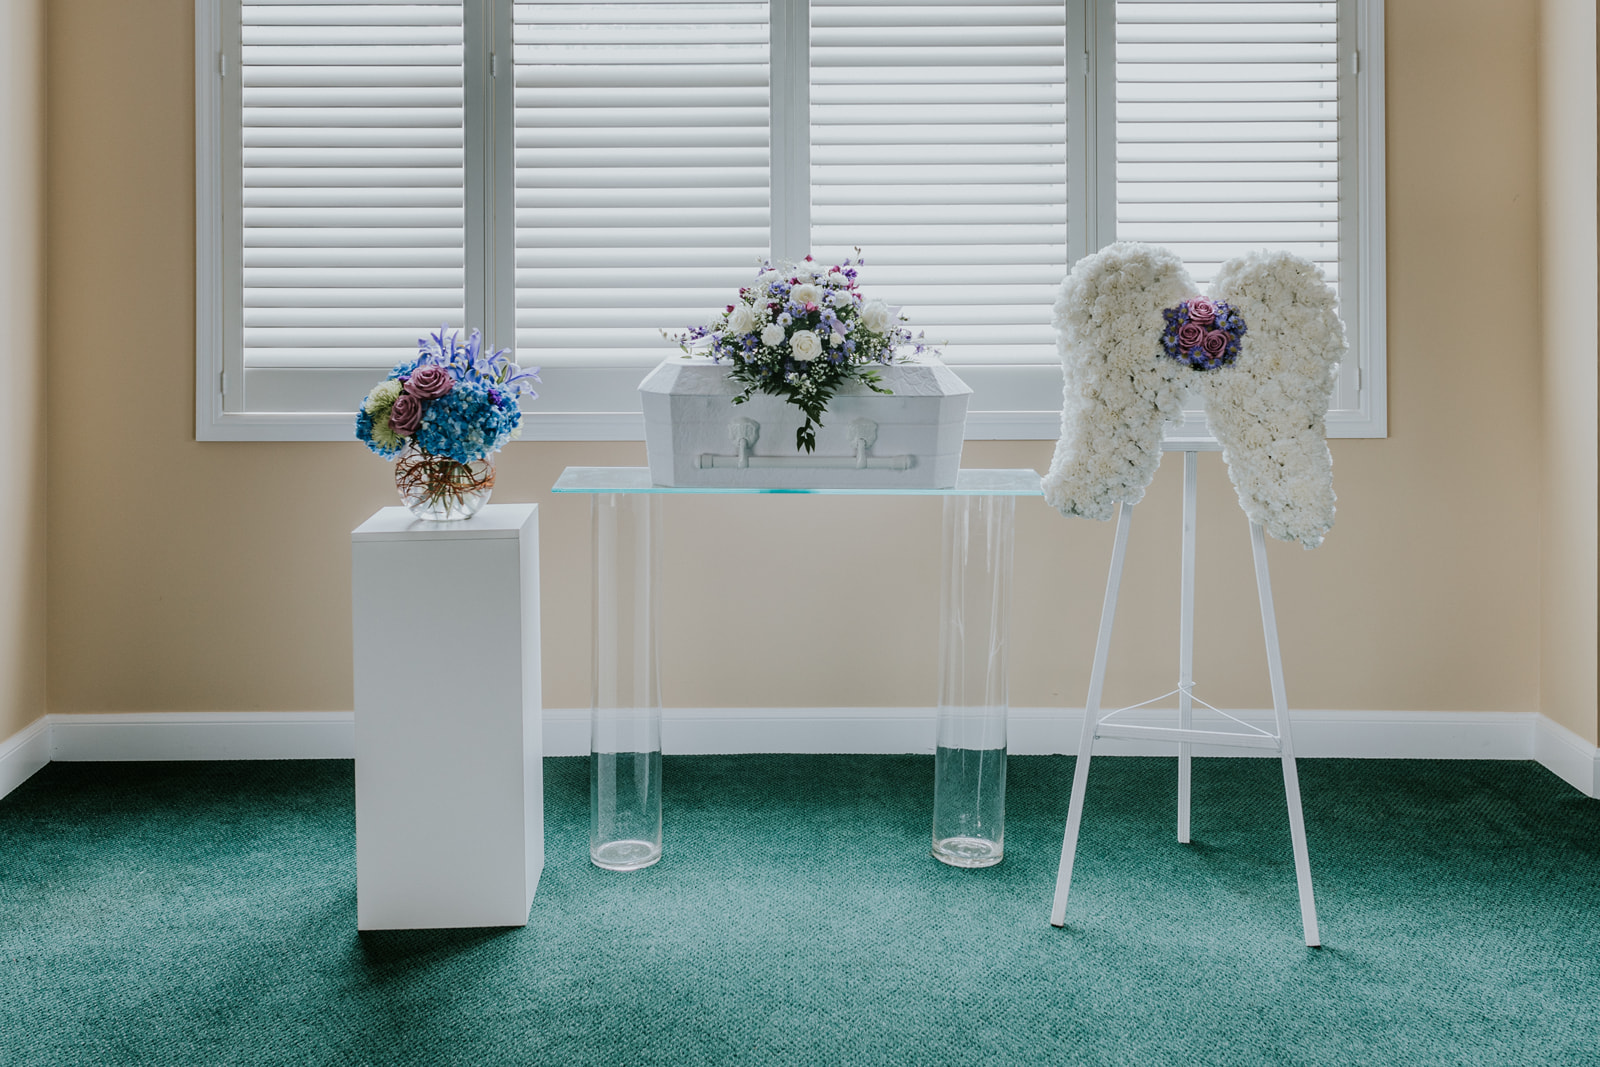 The casket spray of the Celestial Collection is placed on a 24-inch infant casket. It is designed using white roses, purple larkspur, alstroemeria, and aster. The accompanying pieces include custom designed angel wings. This custom easel arrangement uses a form of hand-carved wet floral foam. The wings are created using white carnations accented by a sweet nosegay of lavender roses and purple aster.